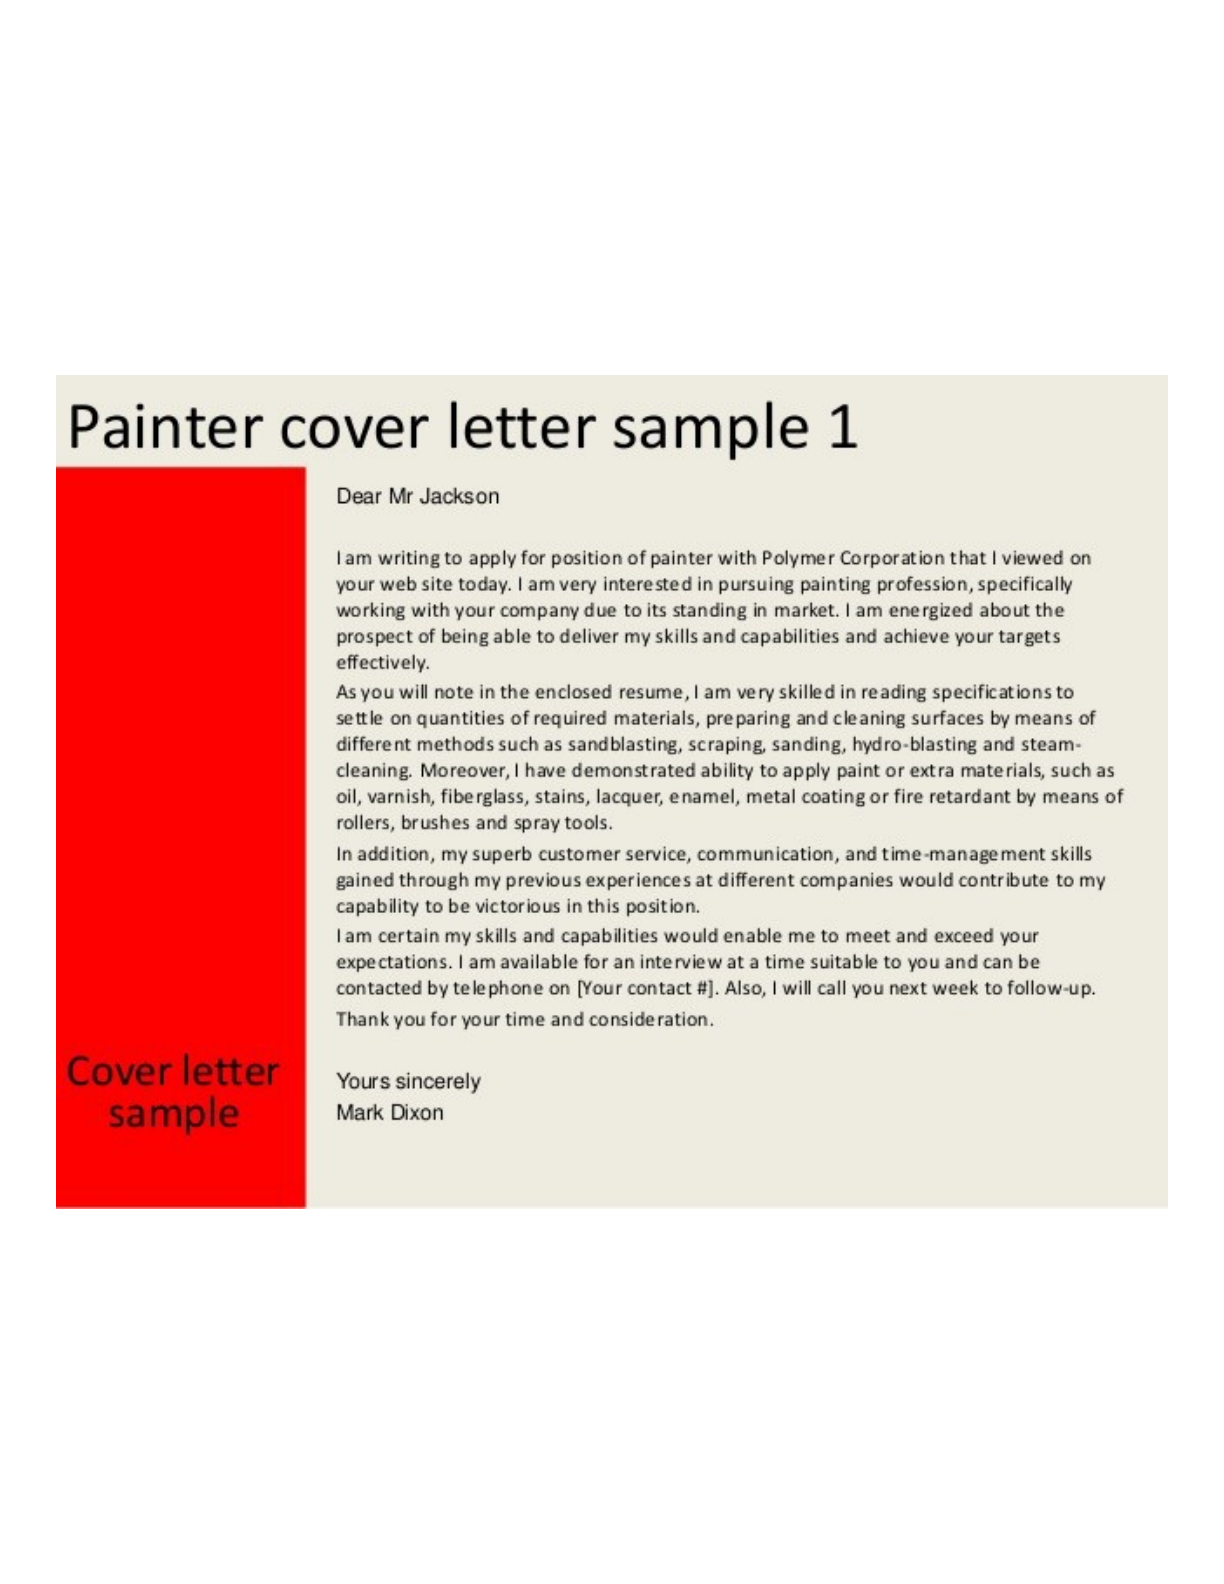 Basic Painter Cover Letter Samples and Templates